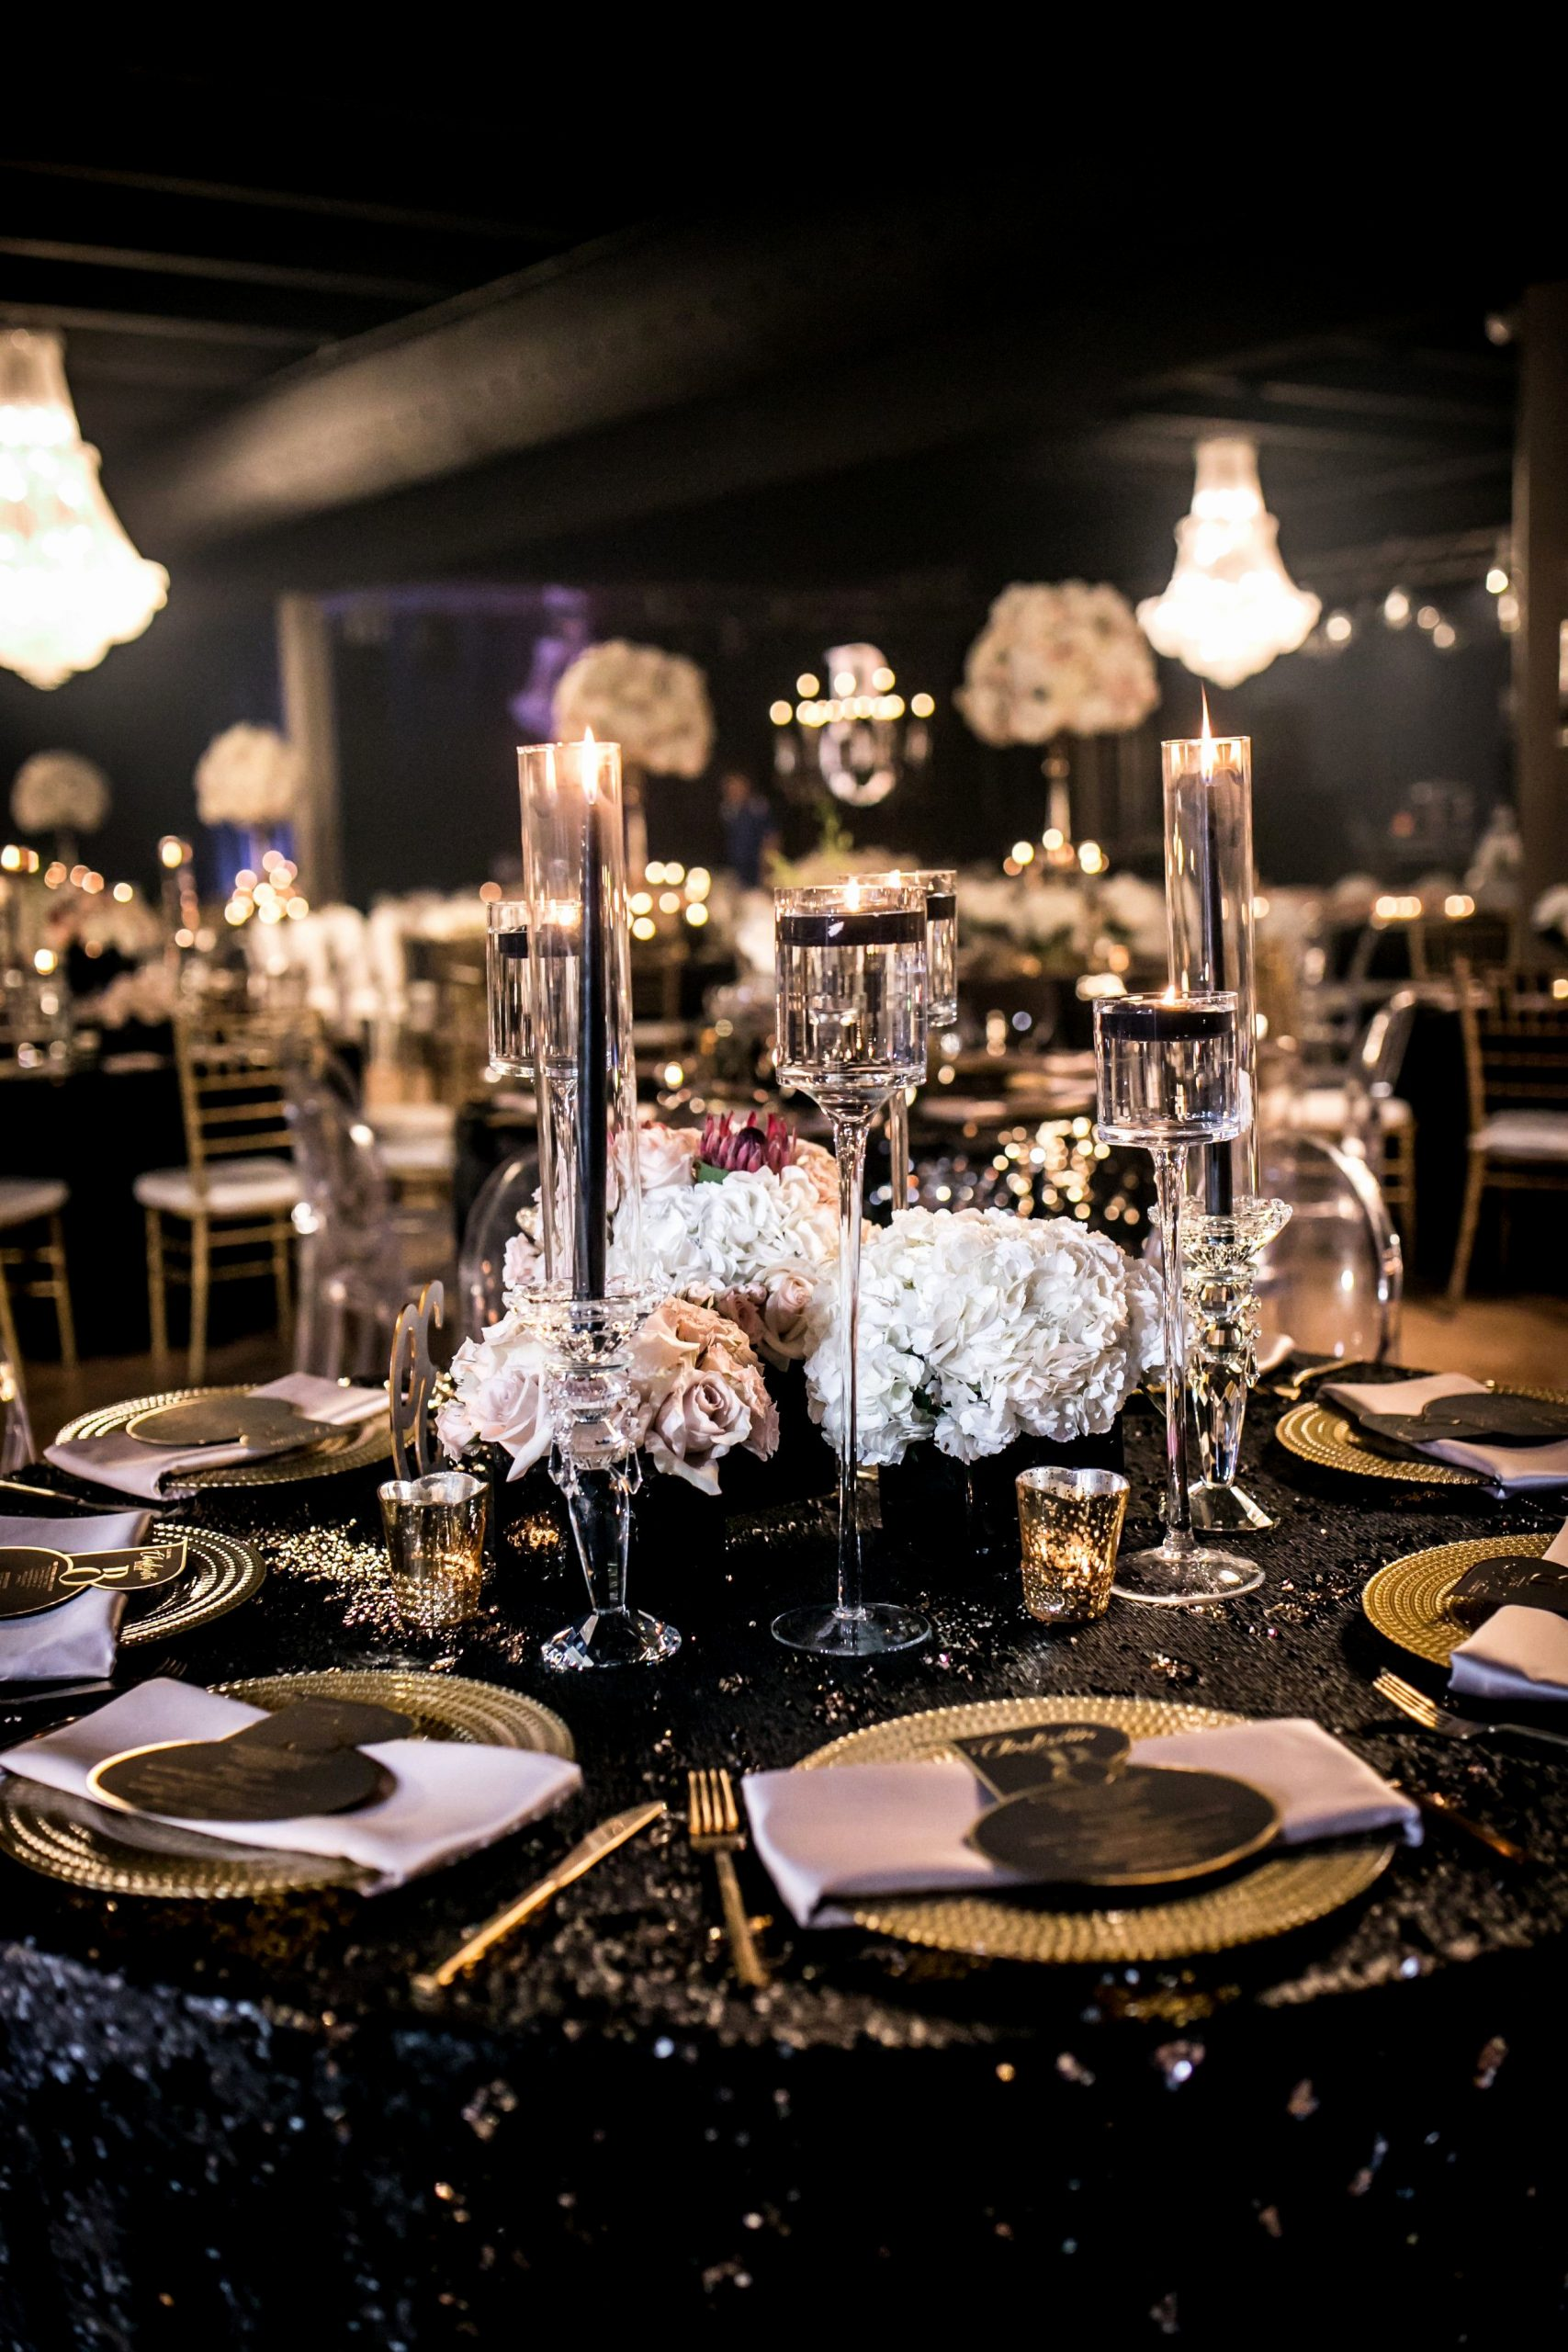 Banquet Hall Birthday Decoration Ideas Beautiful This Luxe Birthday Party Design Has A Classy 70s theme